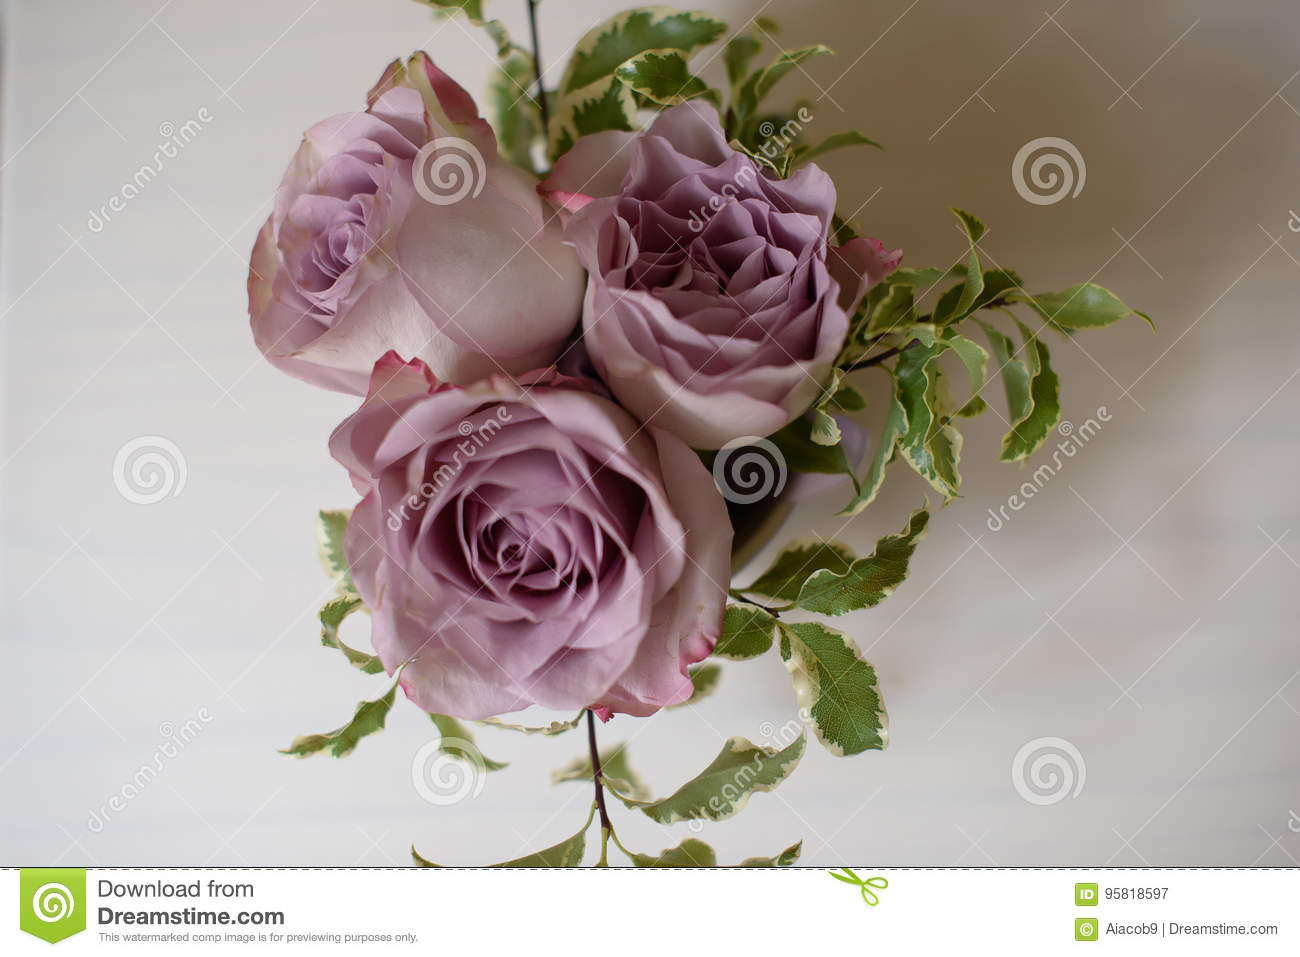 Exotic Wedding Floral Arrangements Of Amnesia Roses In Dusky Pink